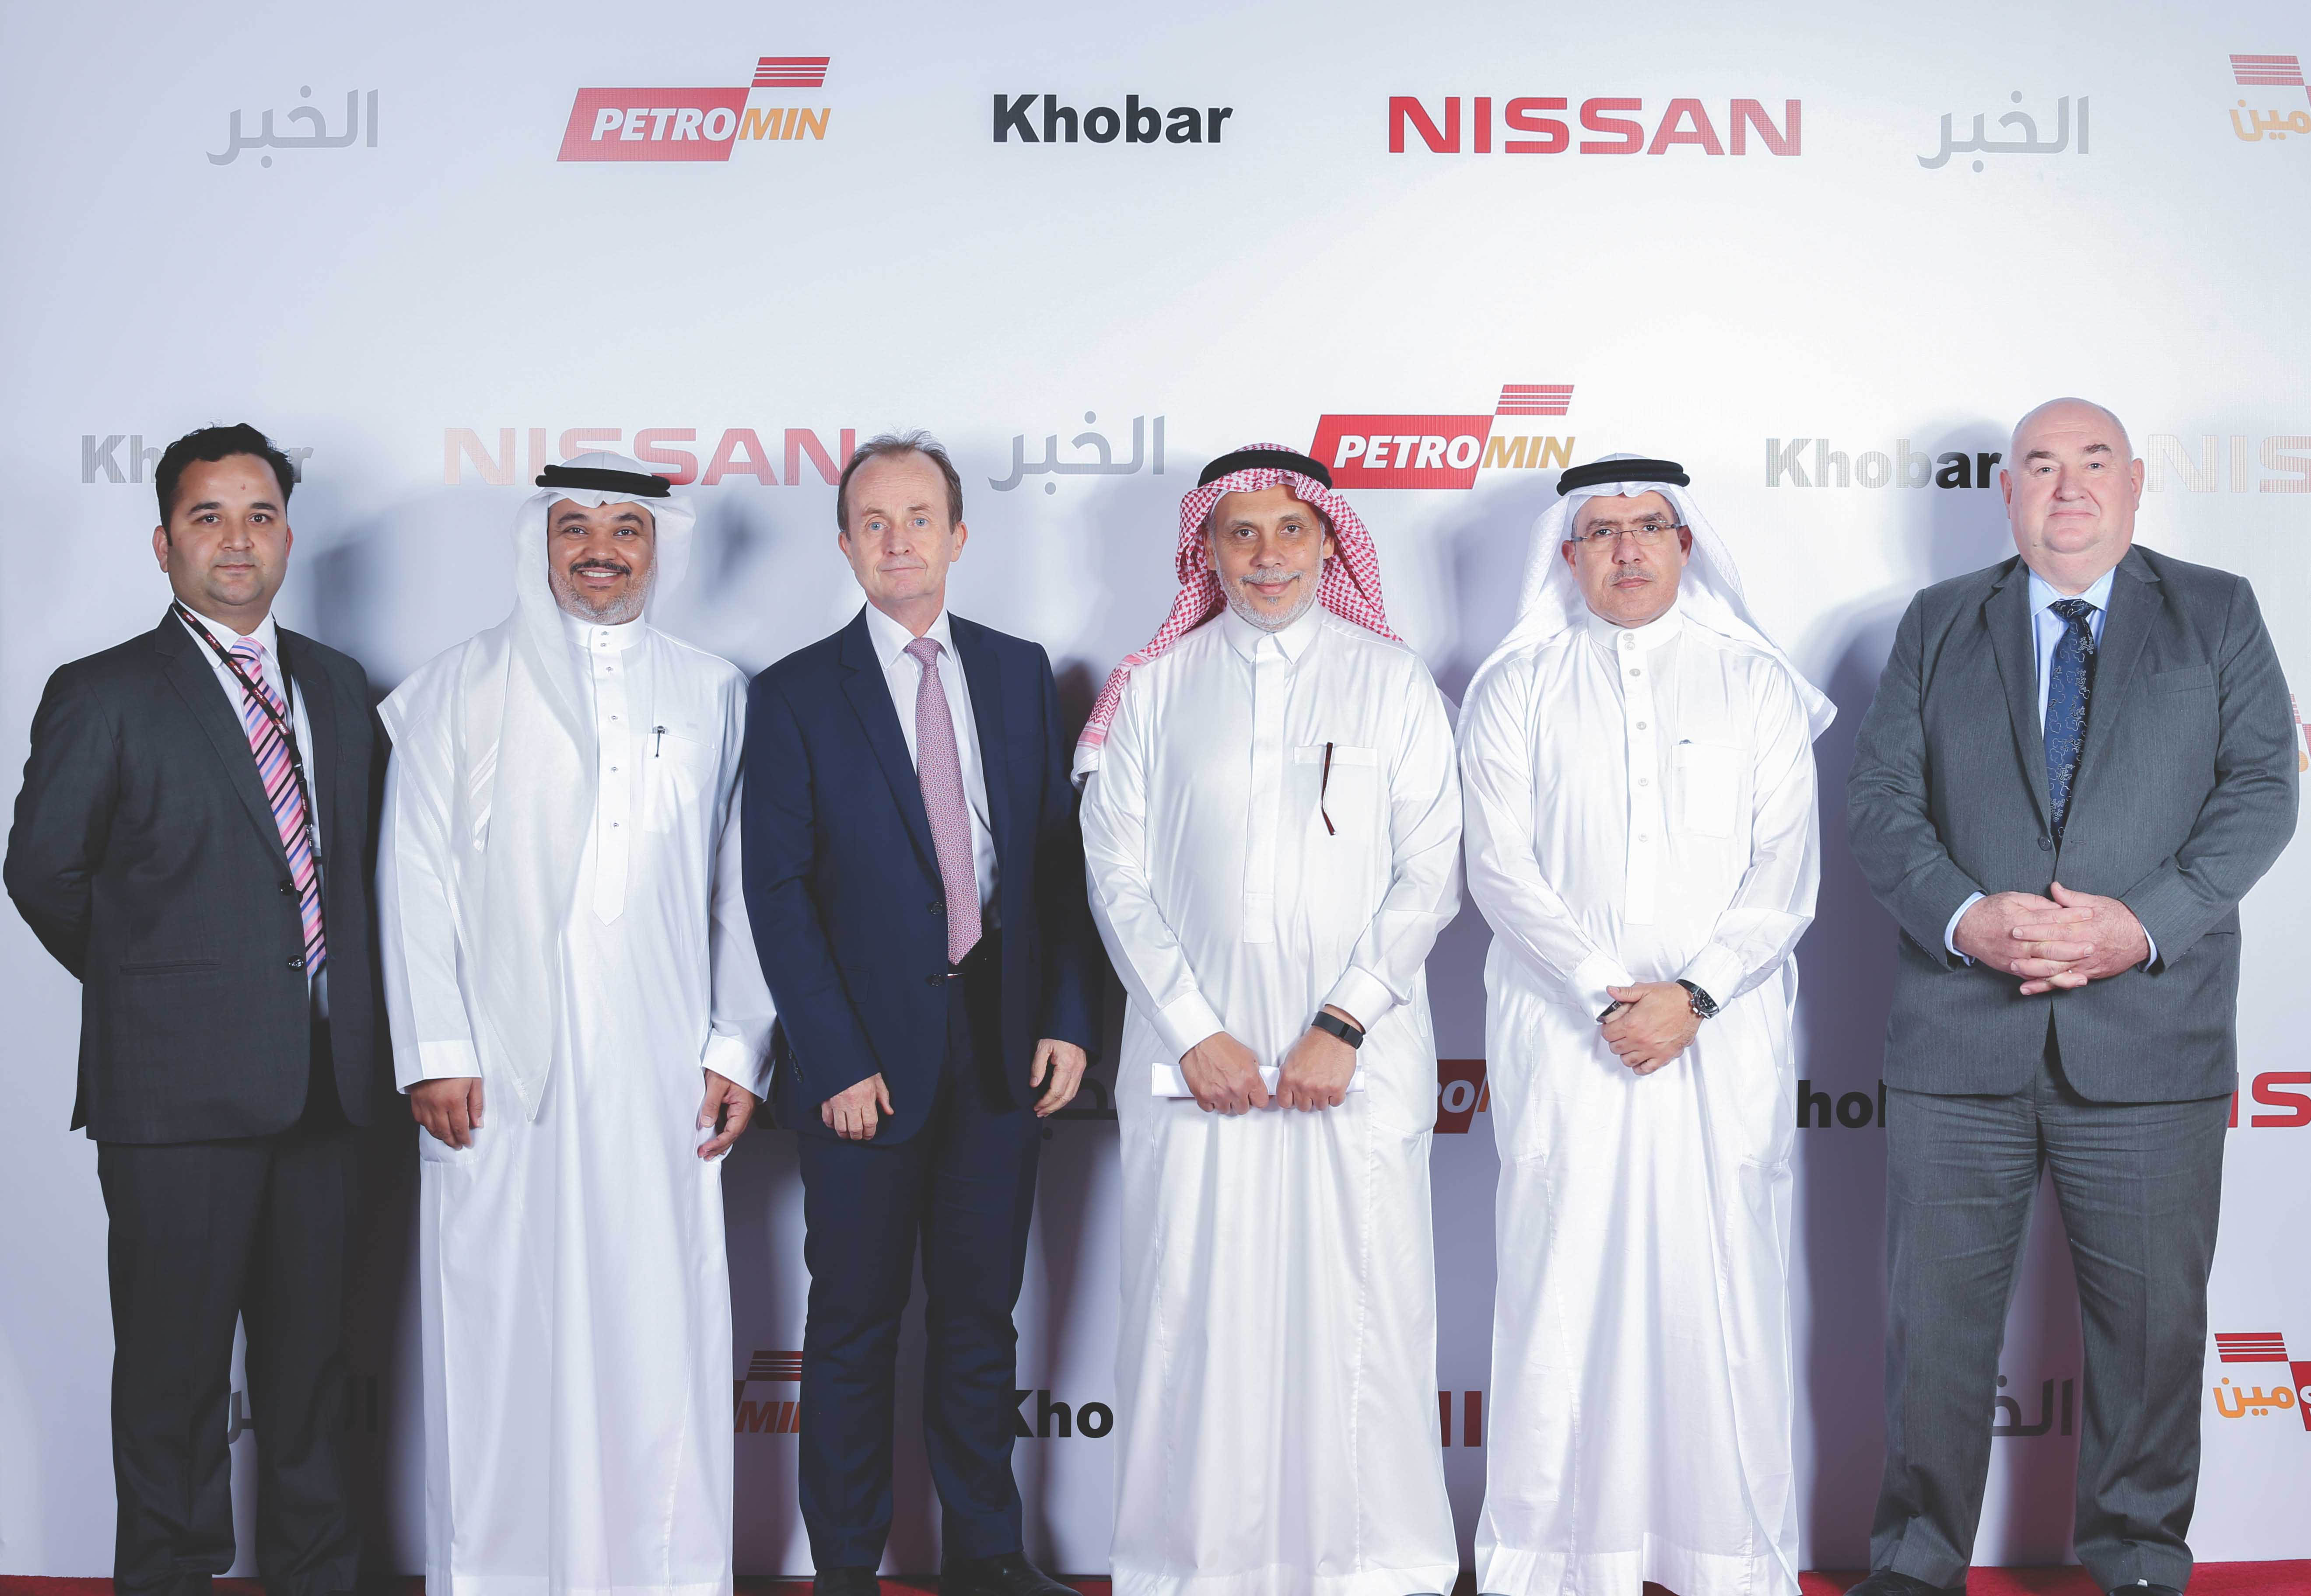 Petromin nissan continues rapid expansion with first dealership showroom in khobar